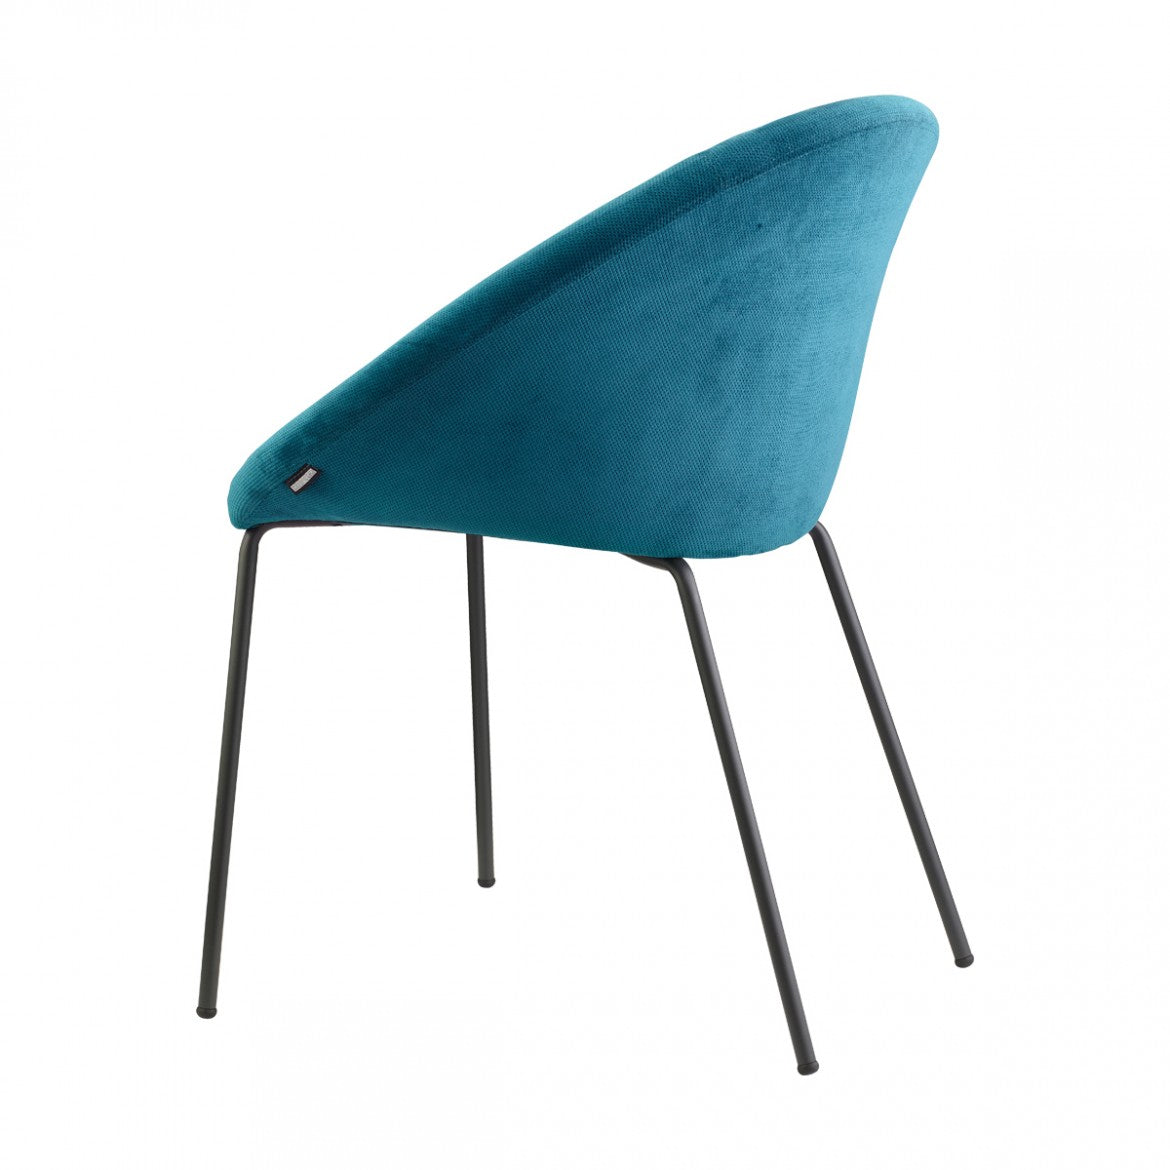 GIULIA POP CHAIR - Interra Designs PO